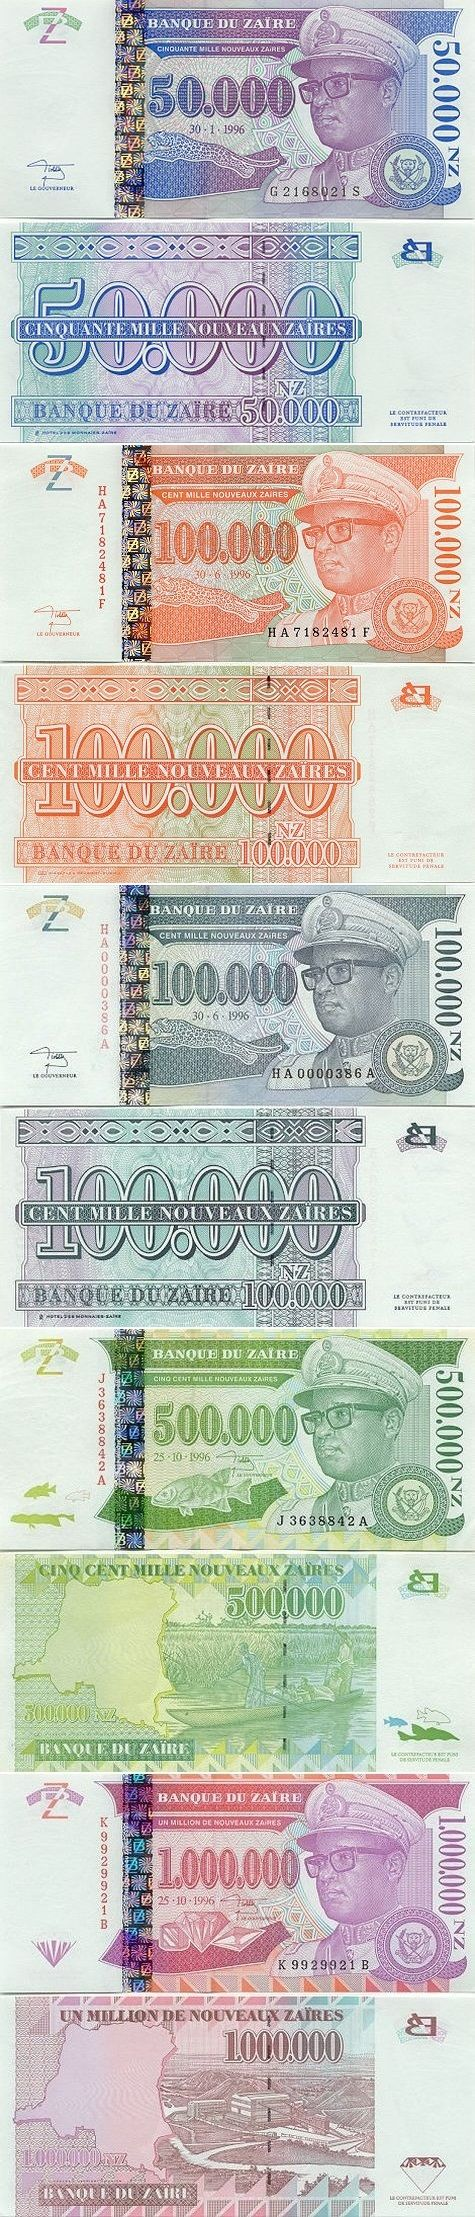 Zaire:  50000 New Zaires 30.1.1996 (Mobutu Sese Seko, Leopard); 100000 New Zaires 30.6.1996 (Mobutu Sese Seko, Leopard); 100000 New Zaires 30.6.1996 (Mobutu Sese Seko, Leopard); 500000 New Zaires 25.10.1996 (Fish, Map, River scene); 1 Million Nouveaux Zaires 25.10.1996 (Diamonds, Mining).